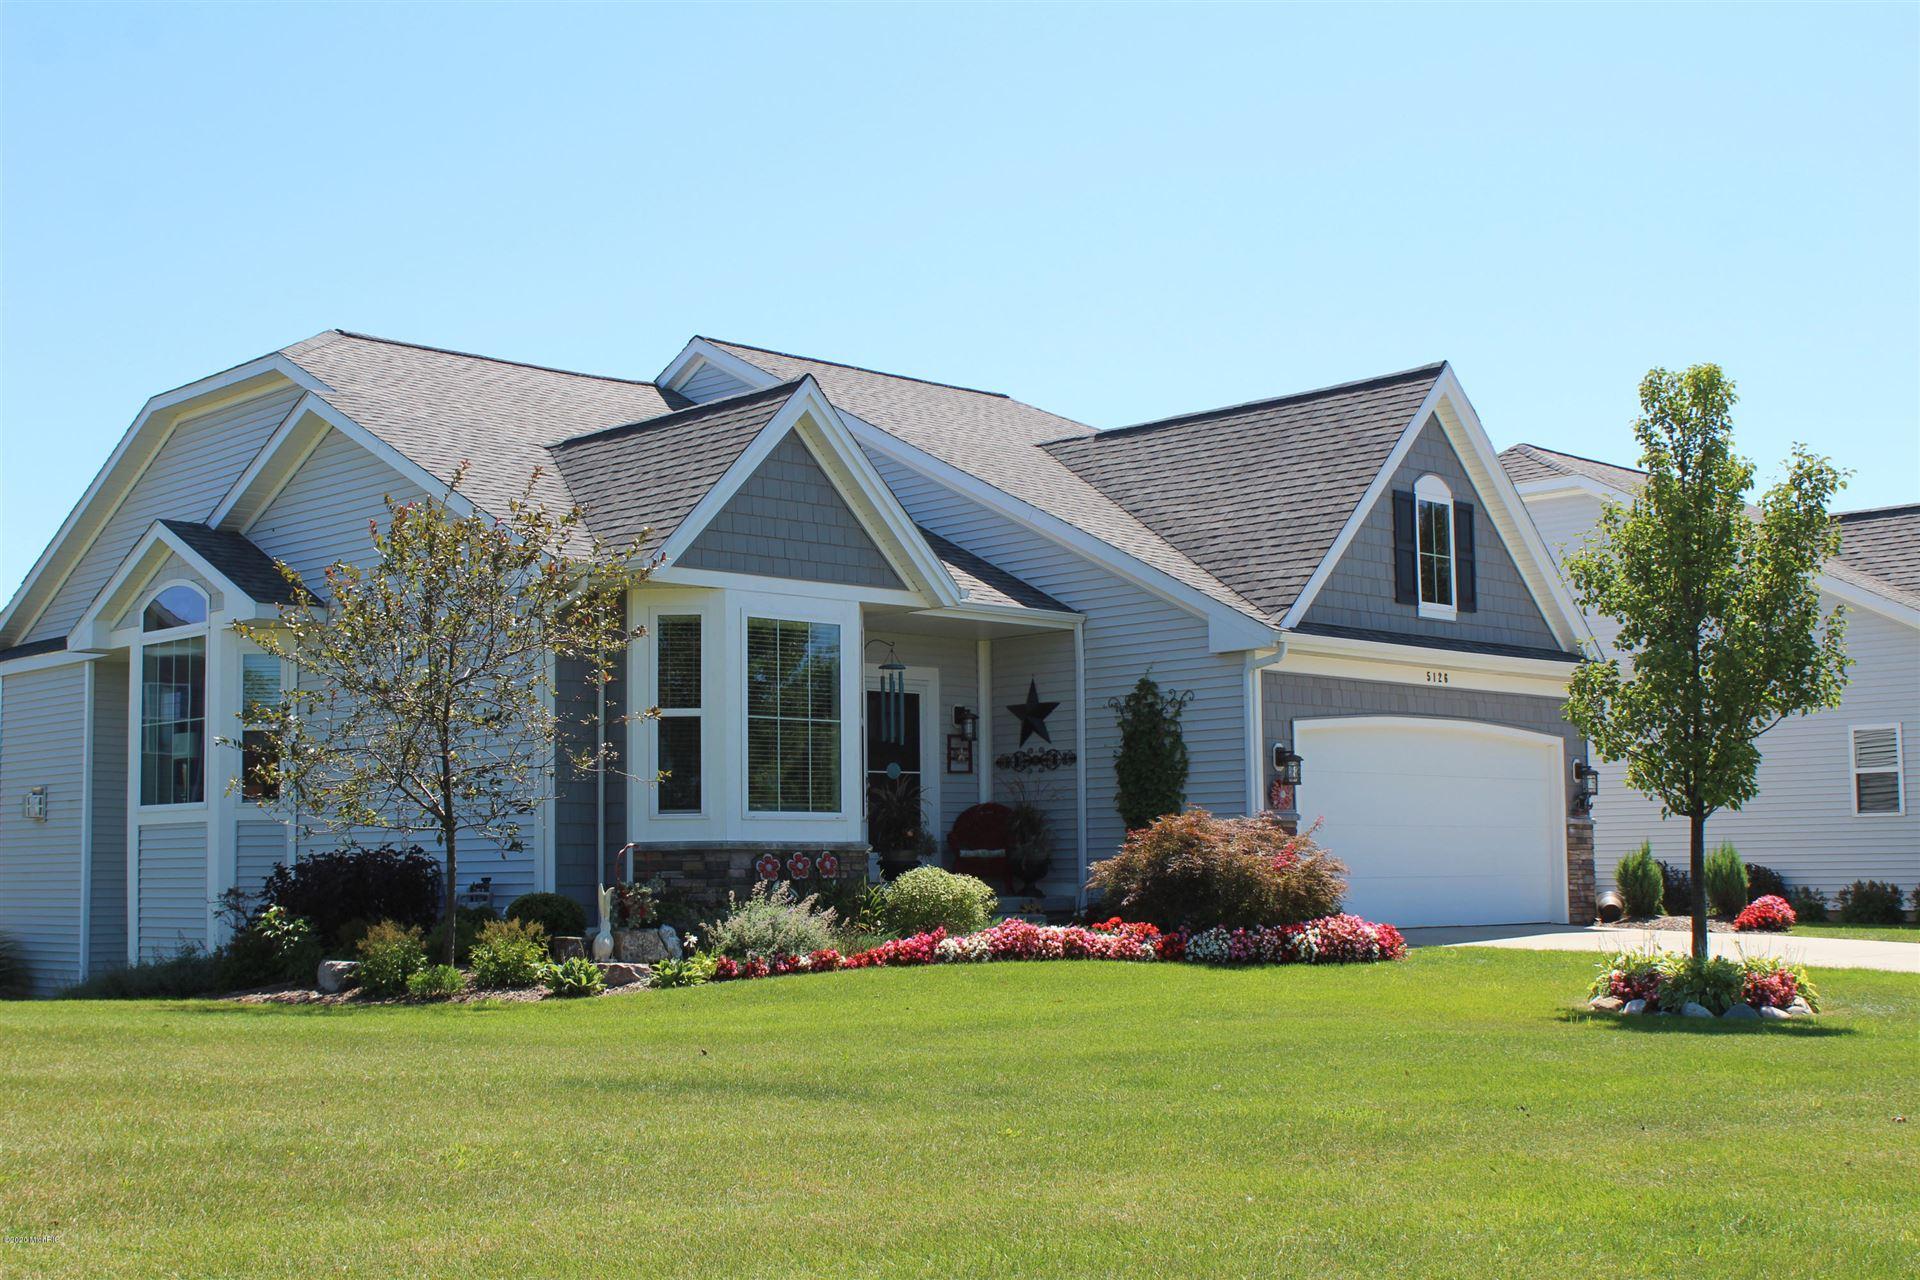 5126 Yellowstone River Drive SW, Grandville, MI 49418 - MLS#: 20040588